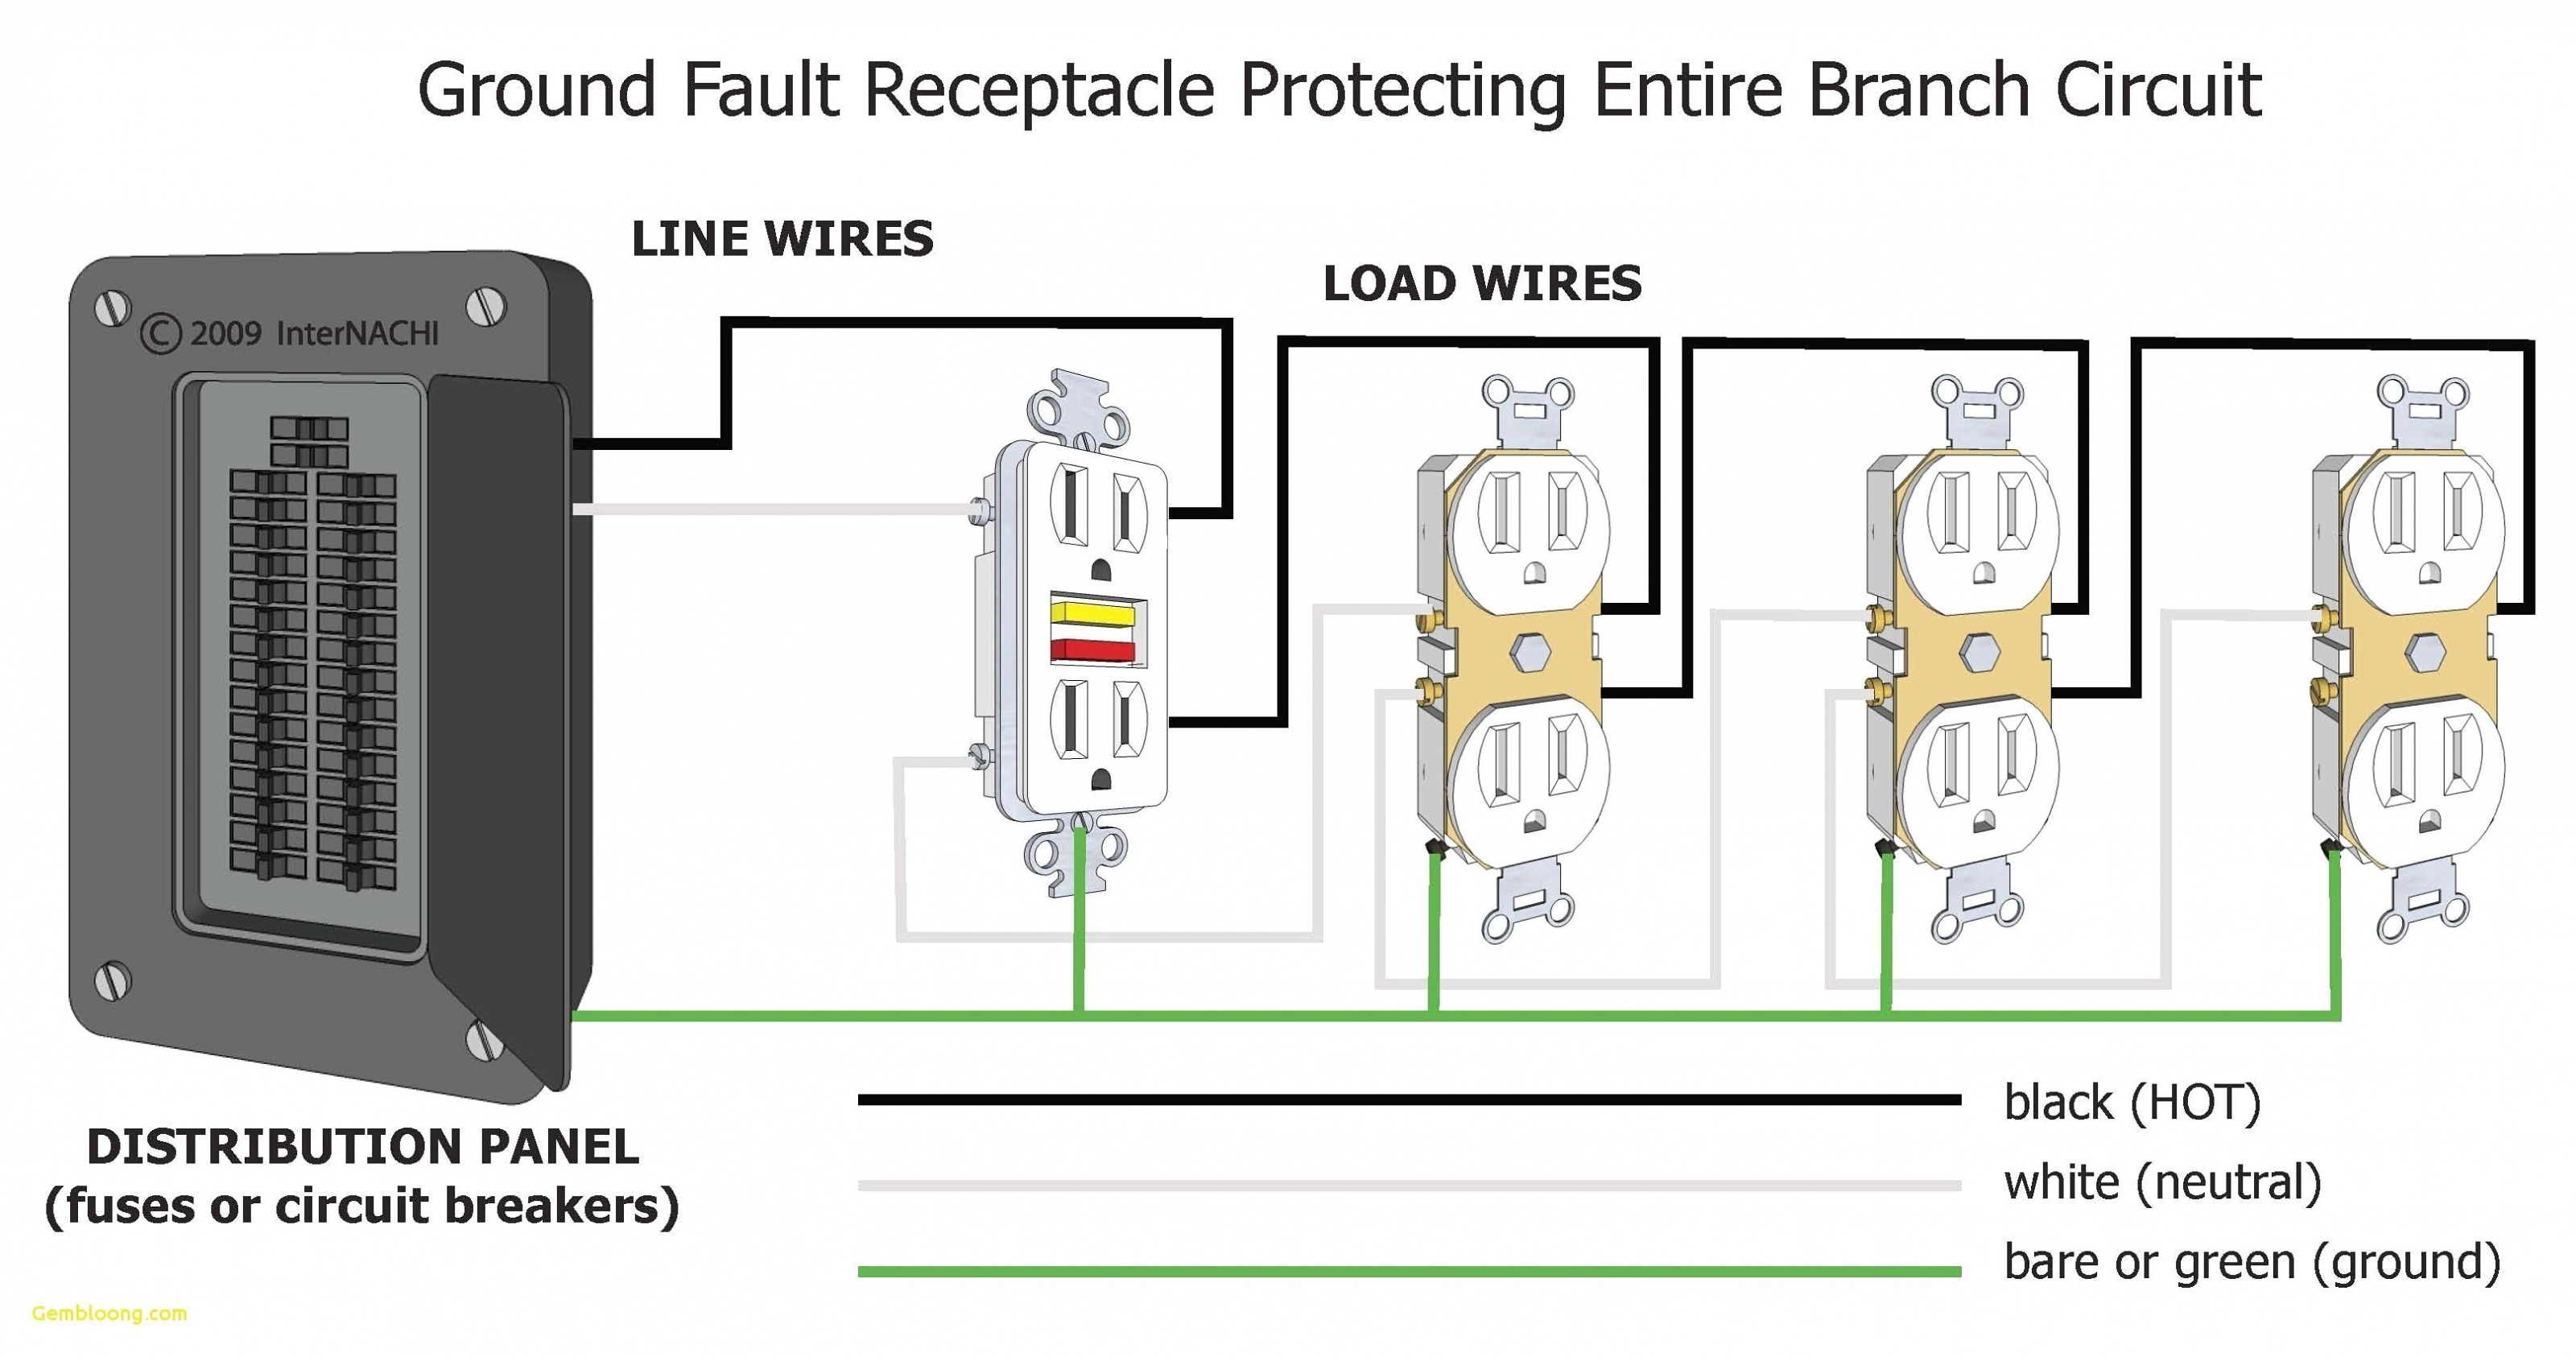 Wiring Diagram Outlet To Switch To Light Best Wiring Diagram - Light Switch To Outlet Wiring Diagram